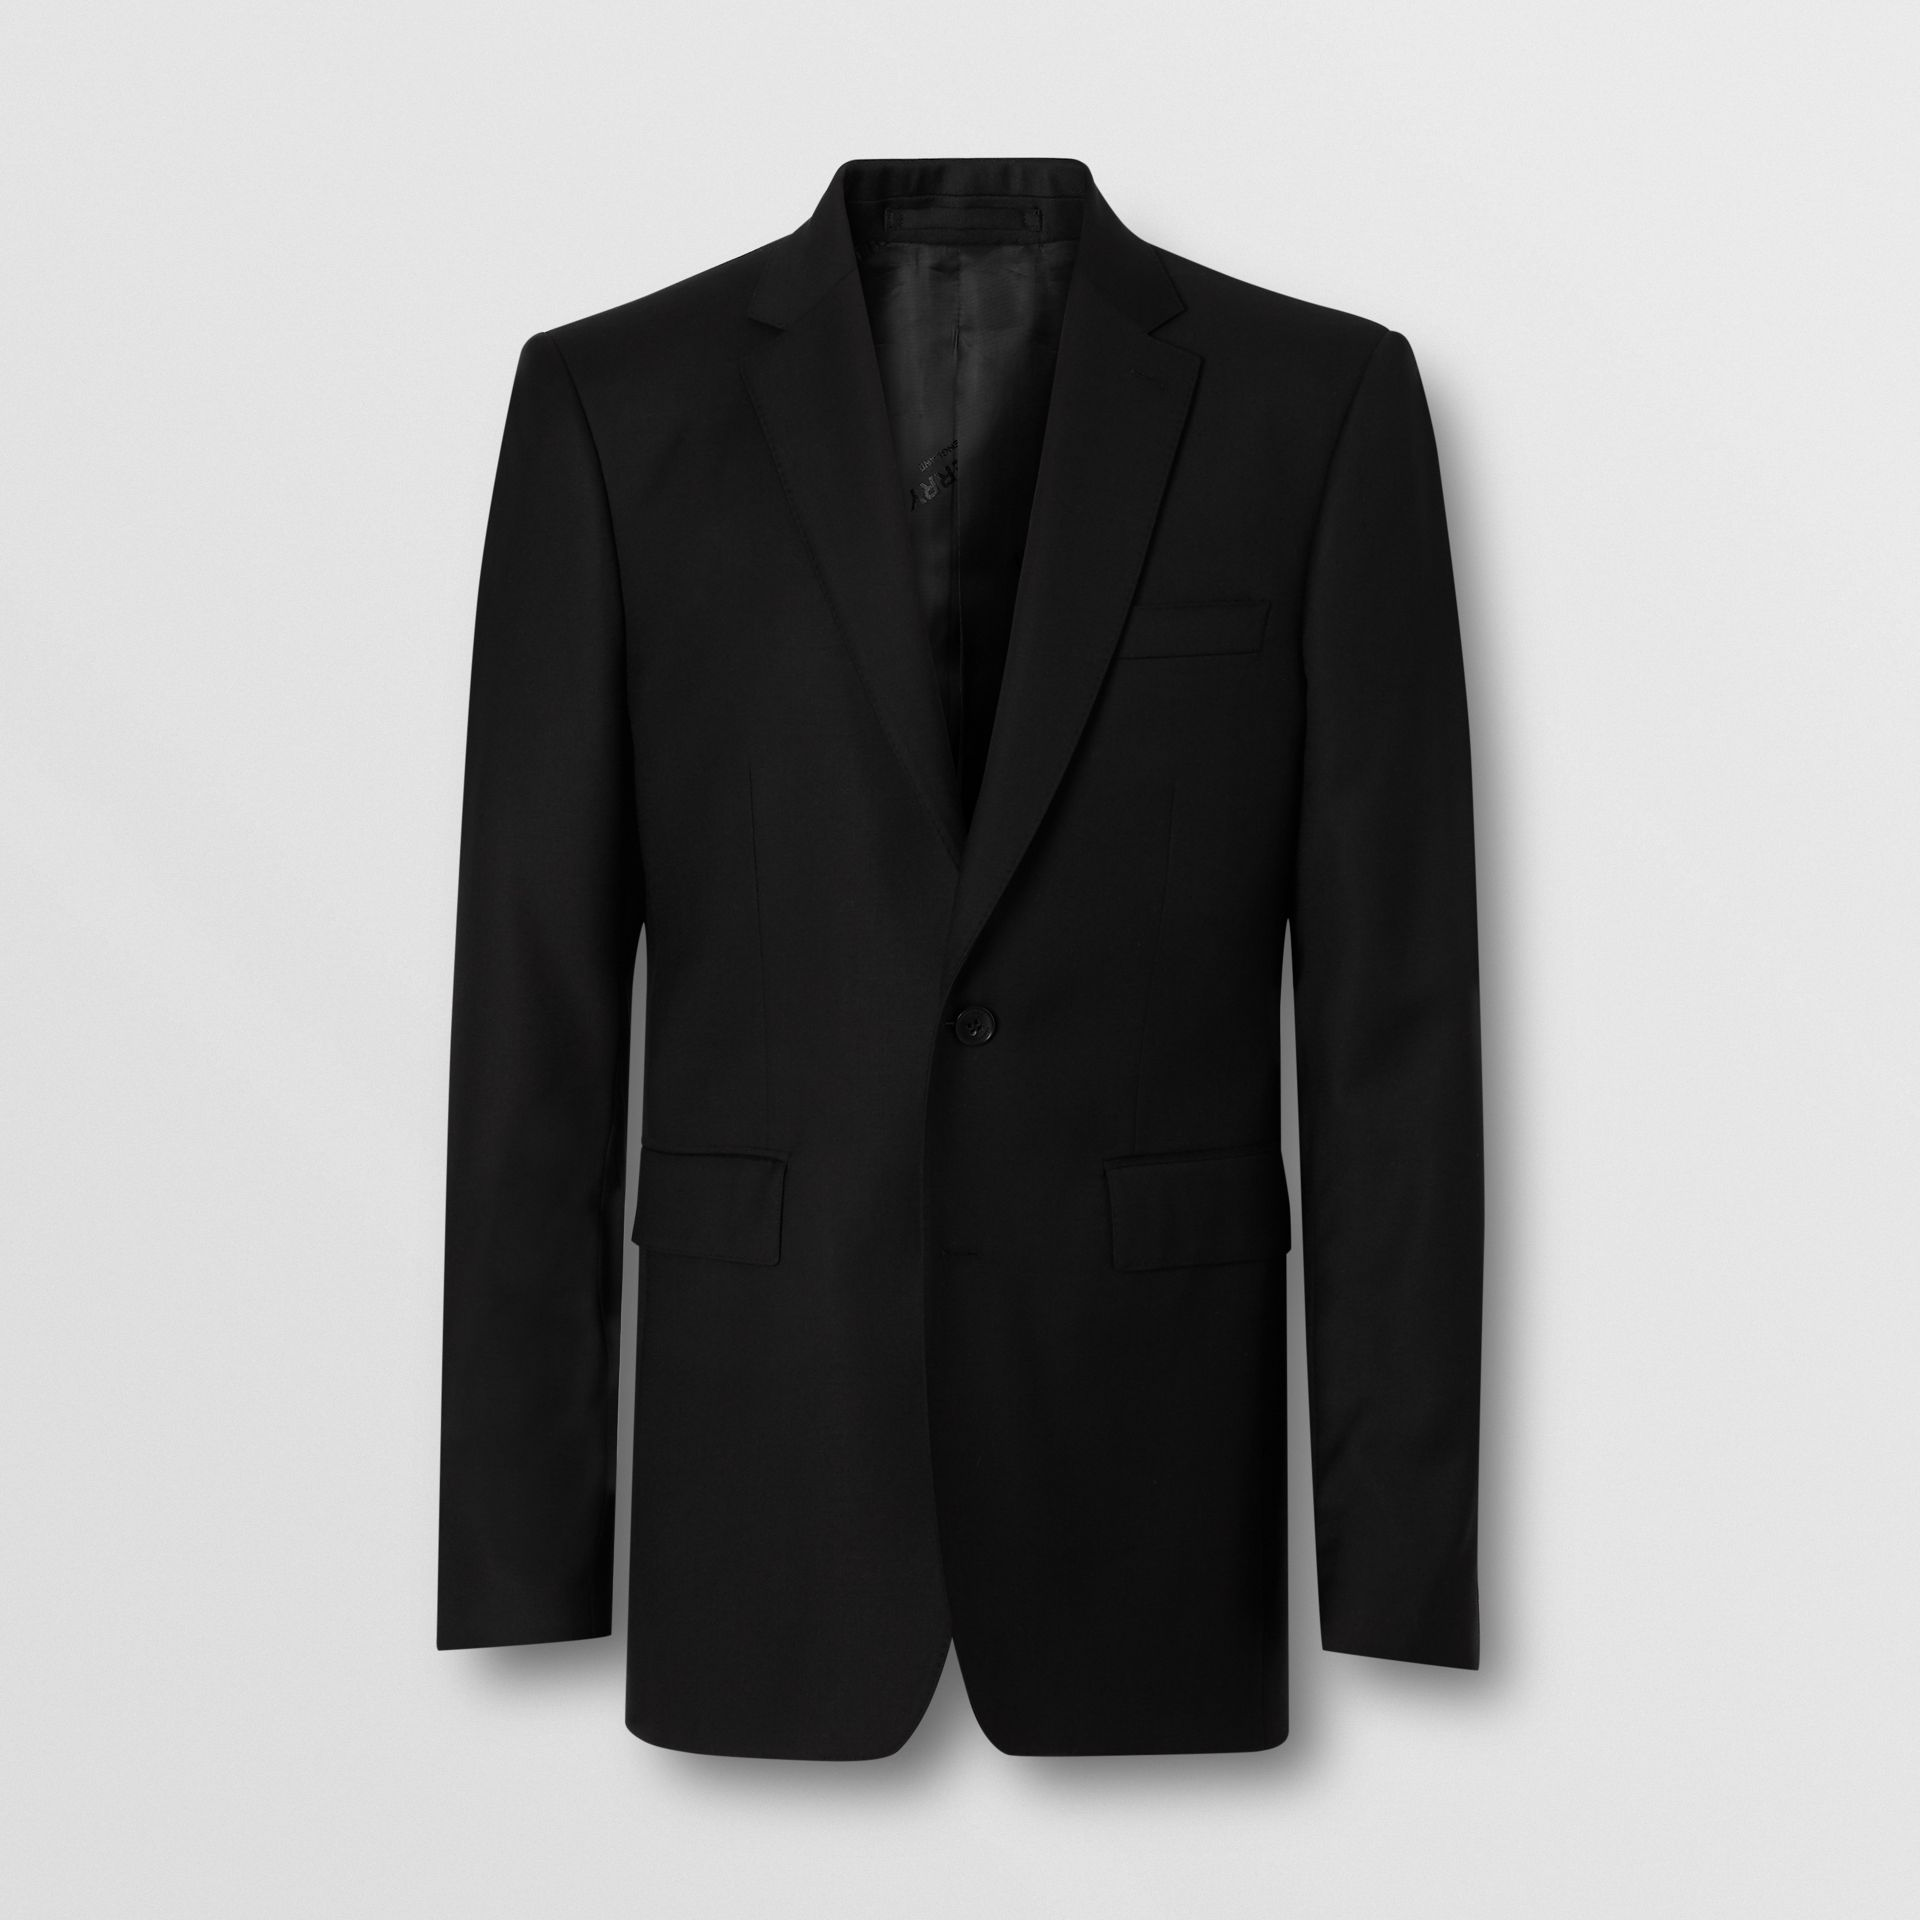 Classic Fit Wool Suit in Black - Men | Burberry - gallery image 3